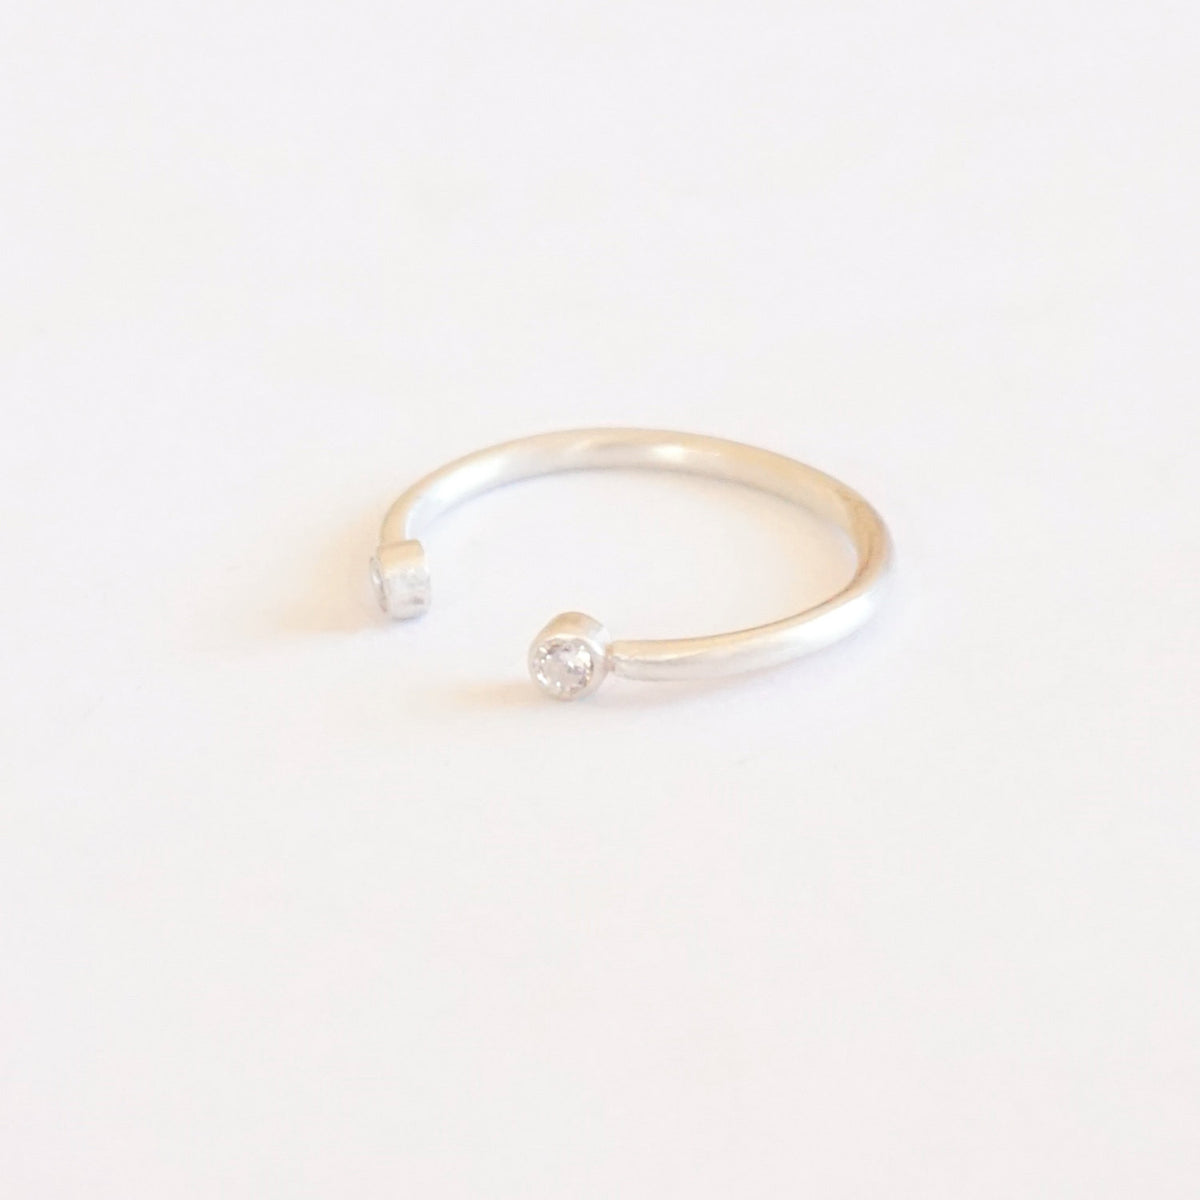 Diastinctively Styled Hand-Made Solid  Open Adjustable Ring With Two Bezel Set Clear CZ's - 0194 - Virginia Wynne Designs